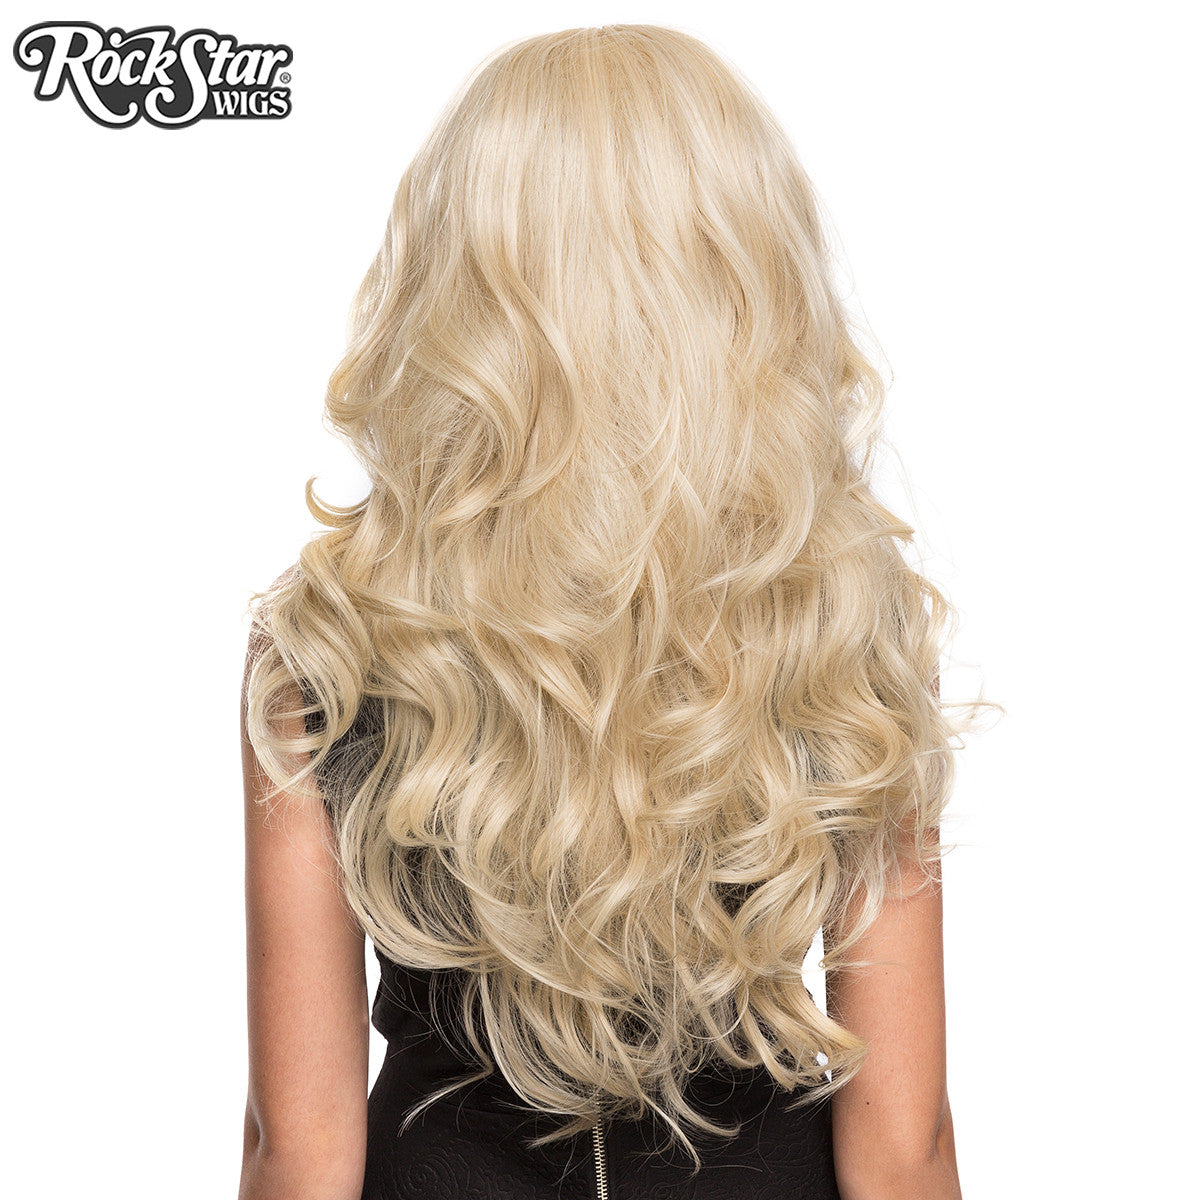 RockStar Wigs® <br> Farrah™ Collection - BOMBSHELL -00169